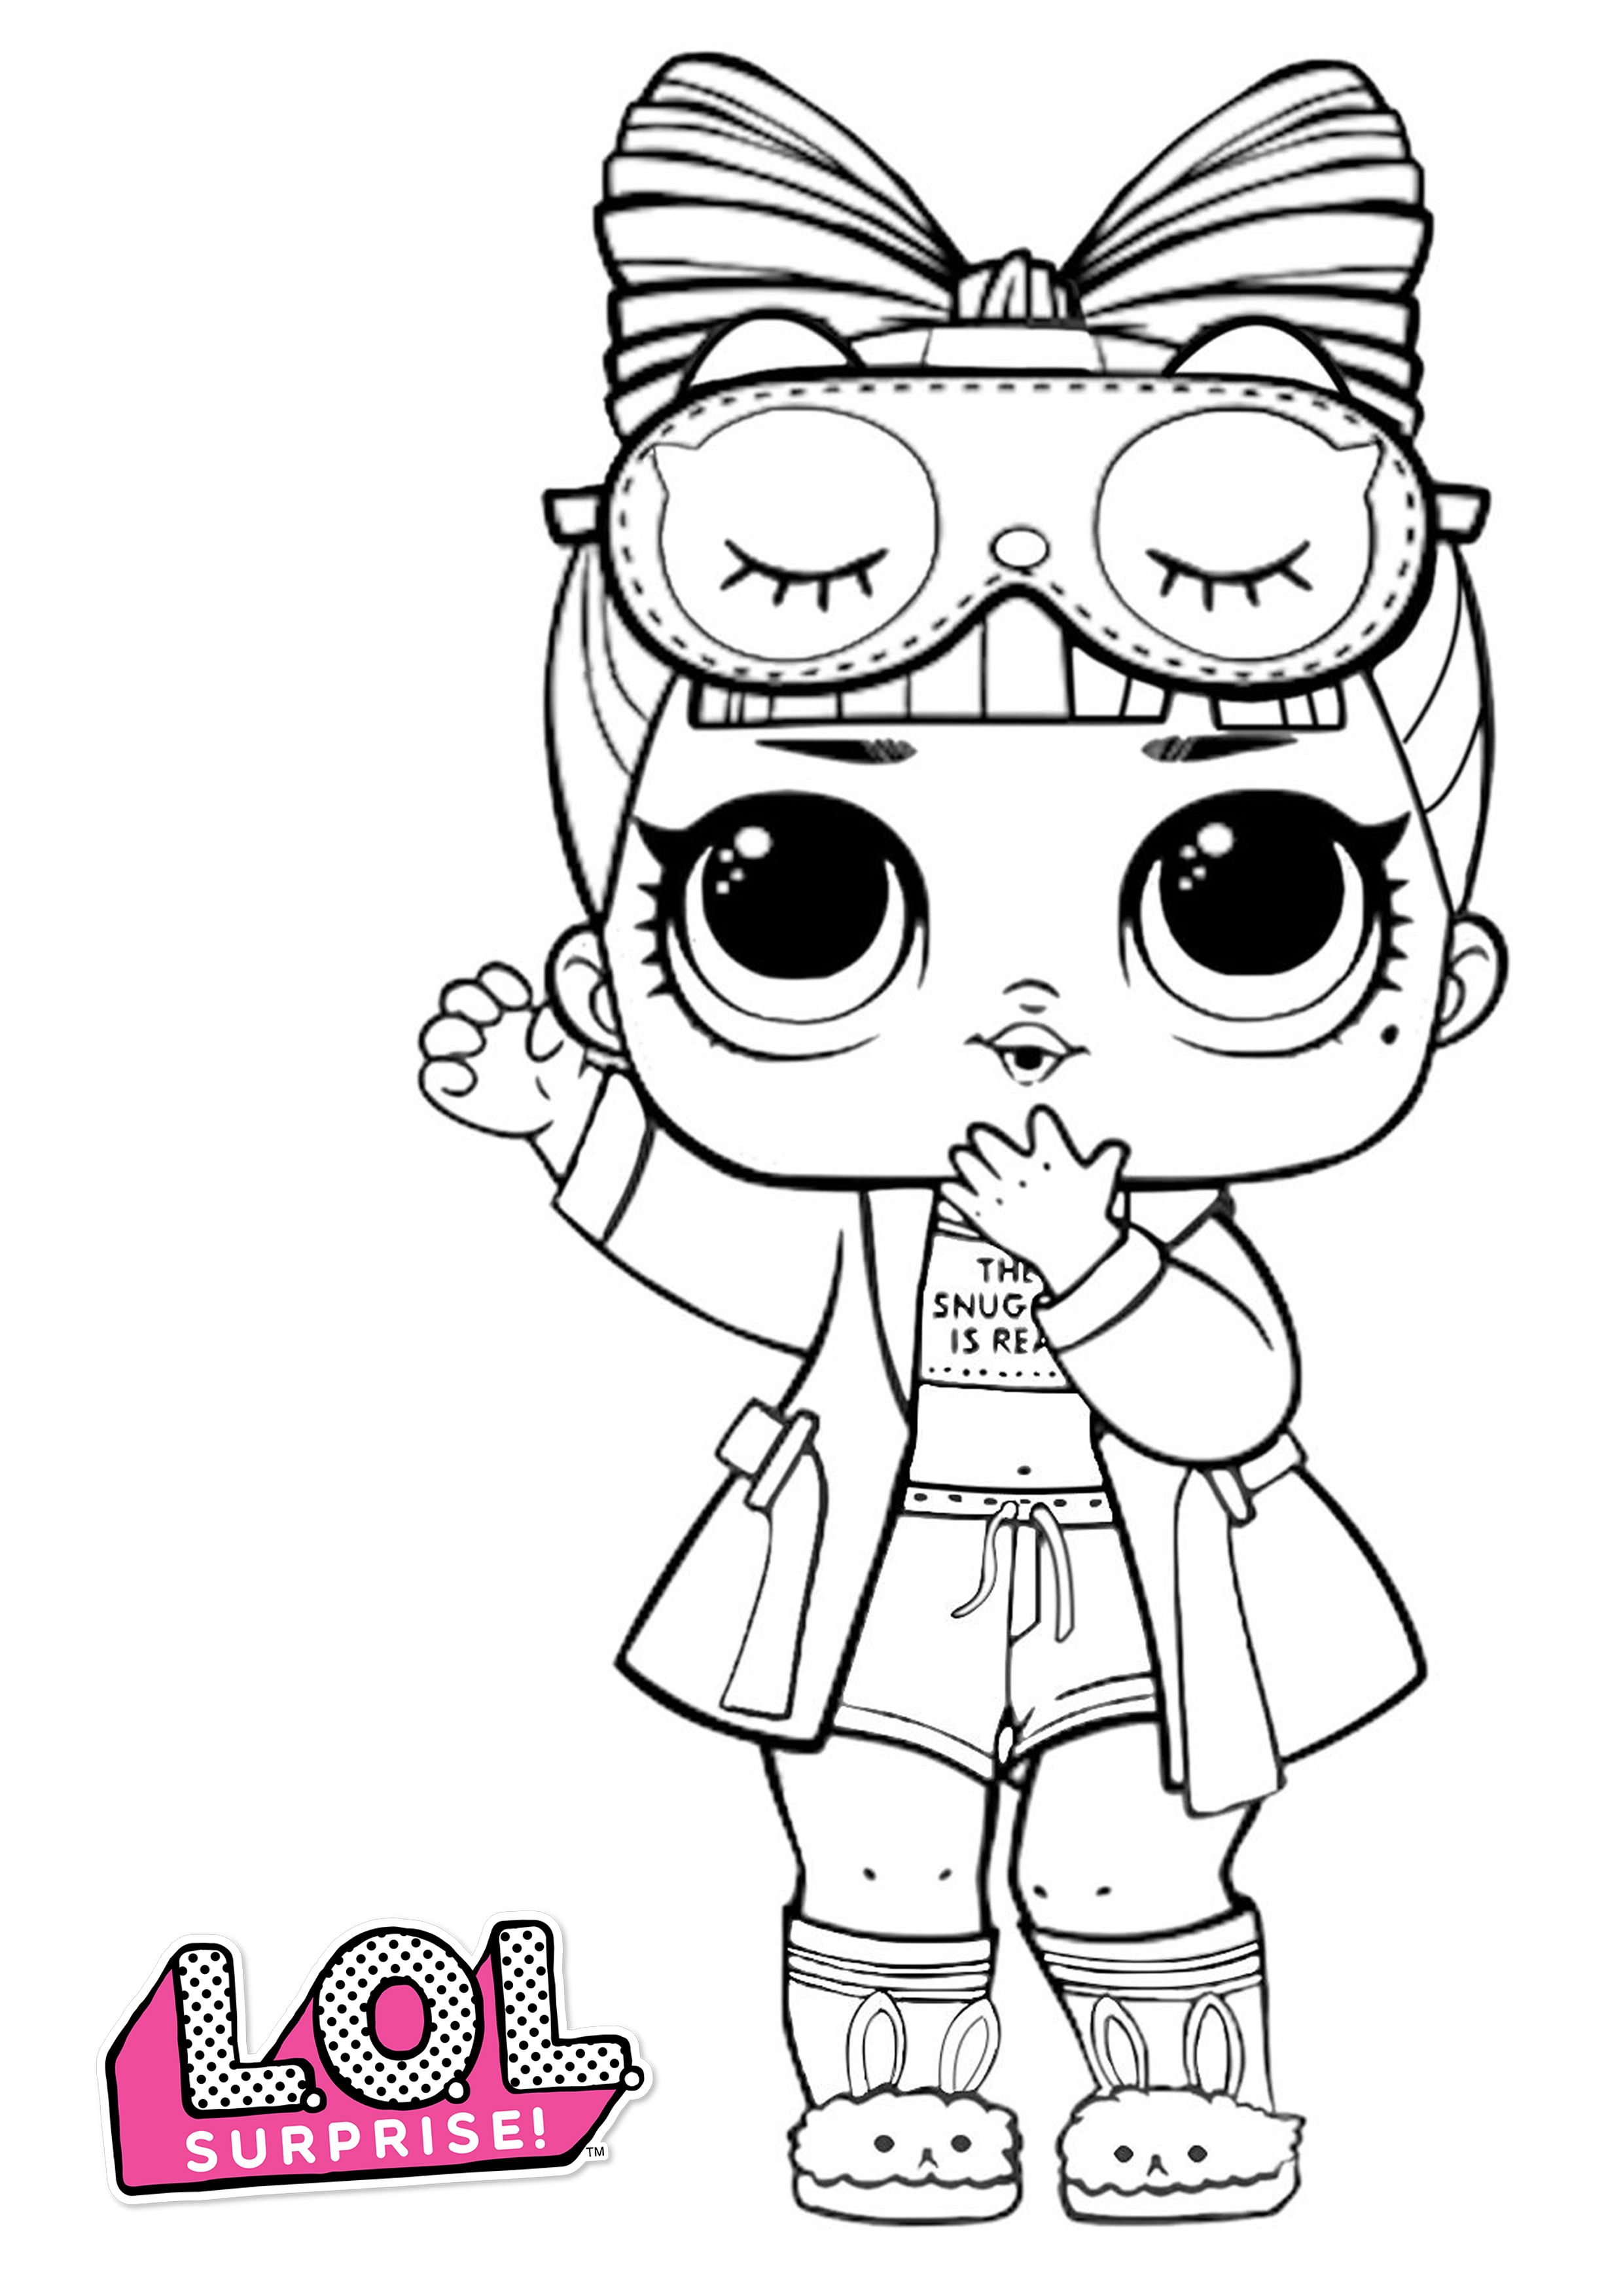 11+ Cute coloring pages for girls lol inspirations